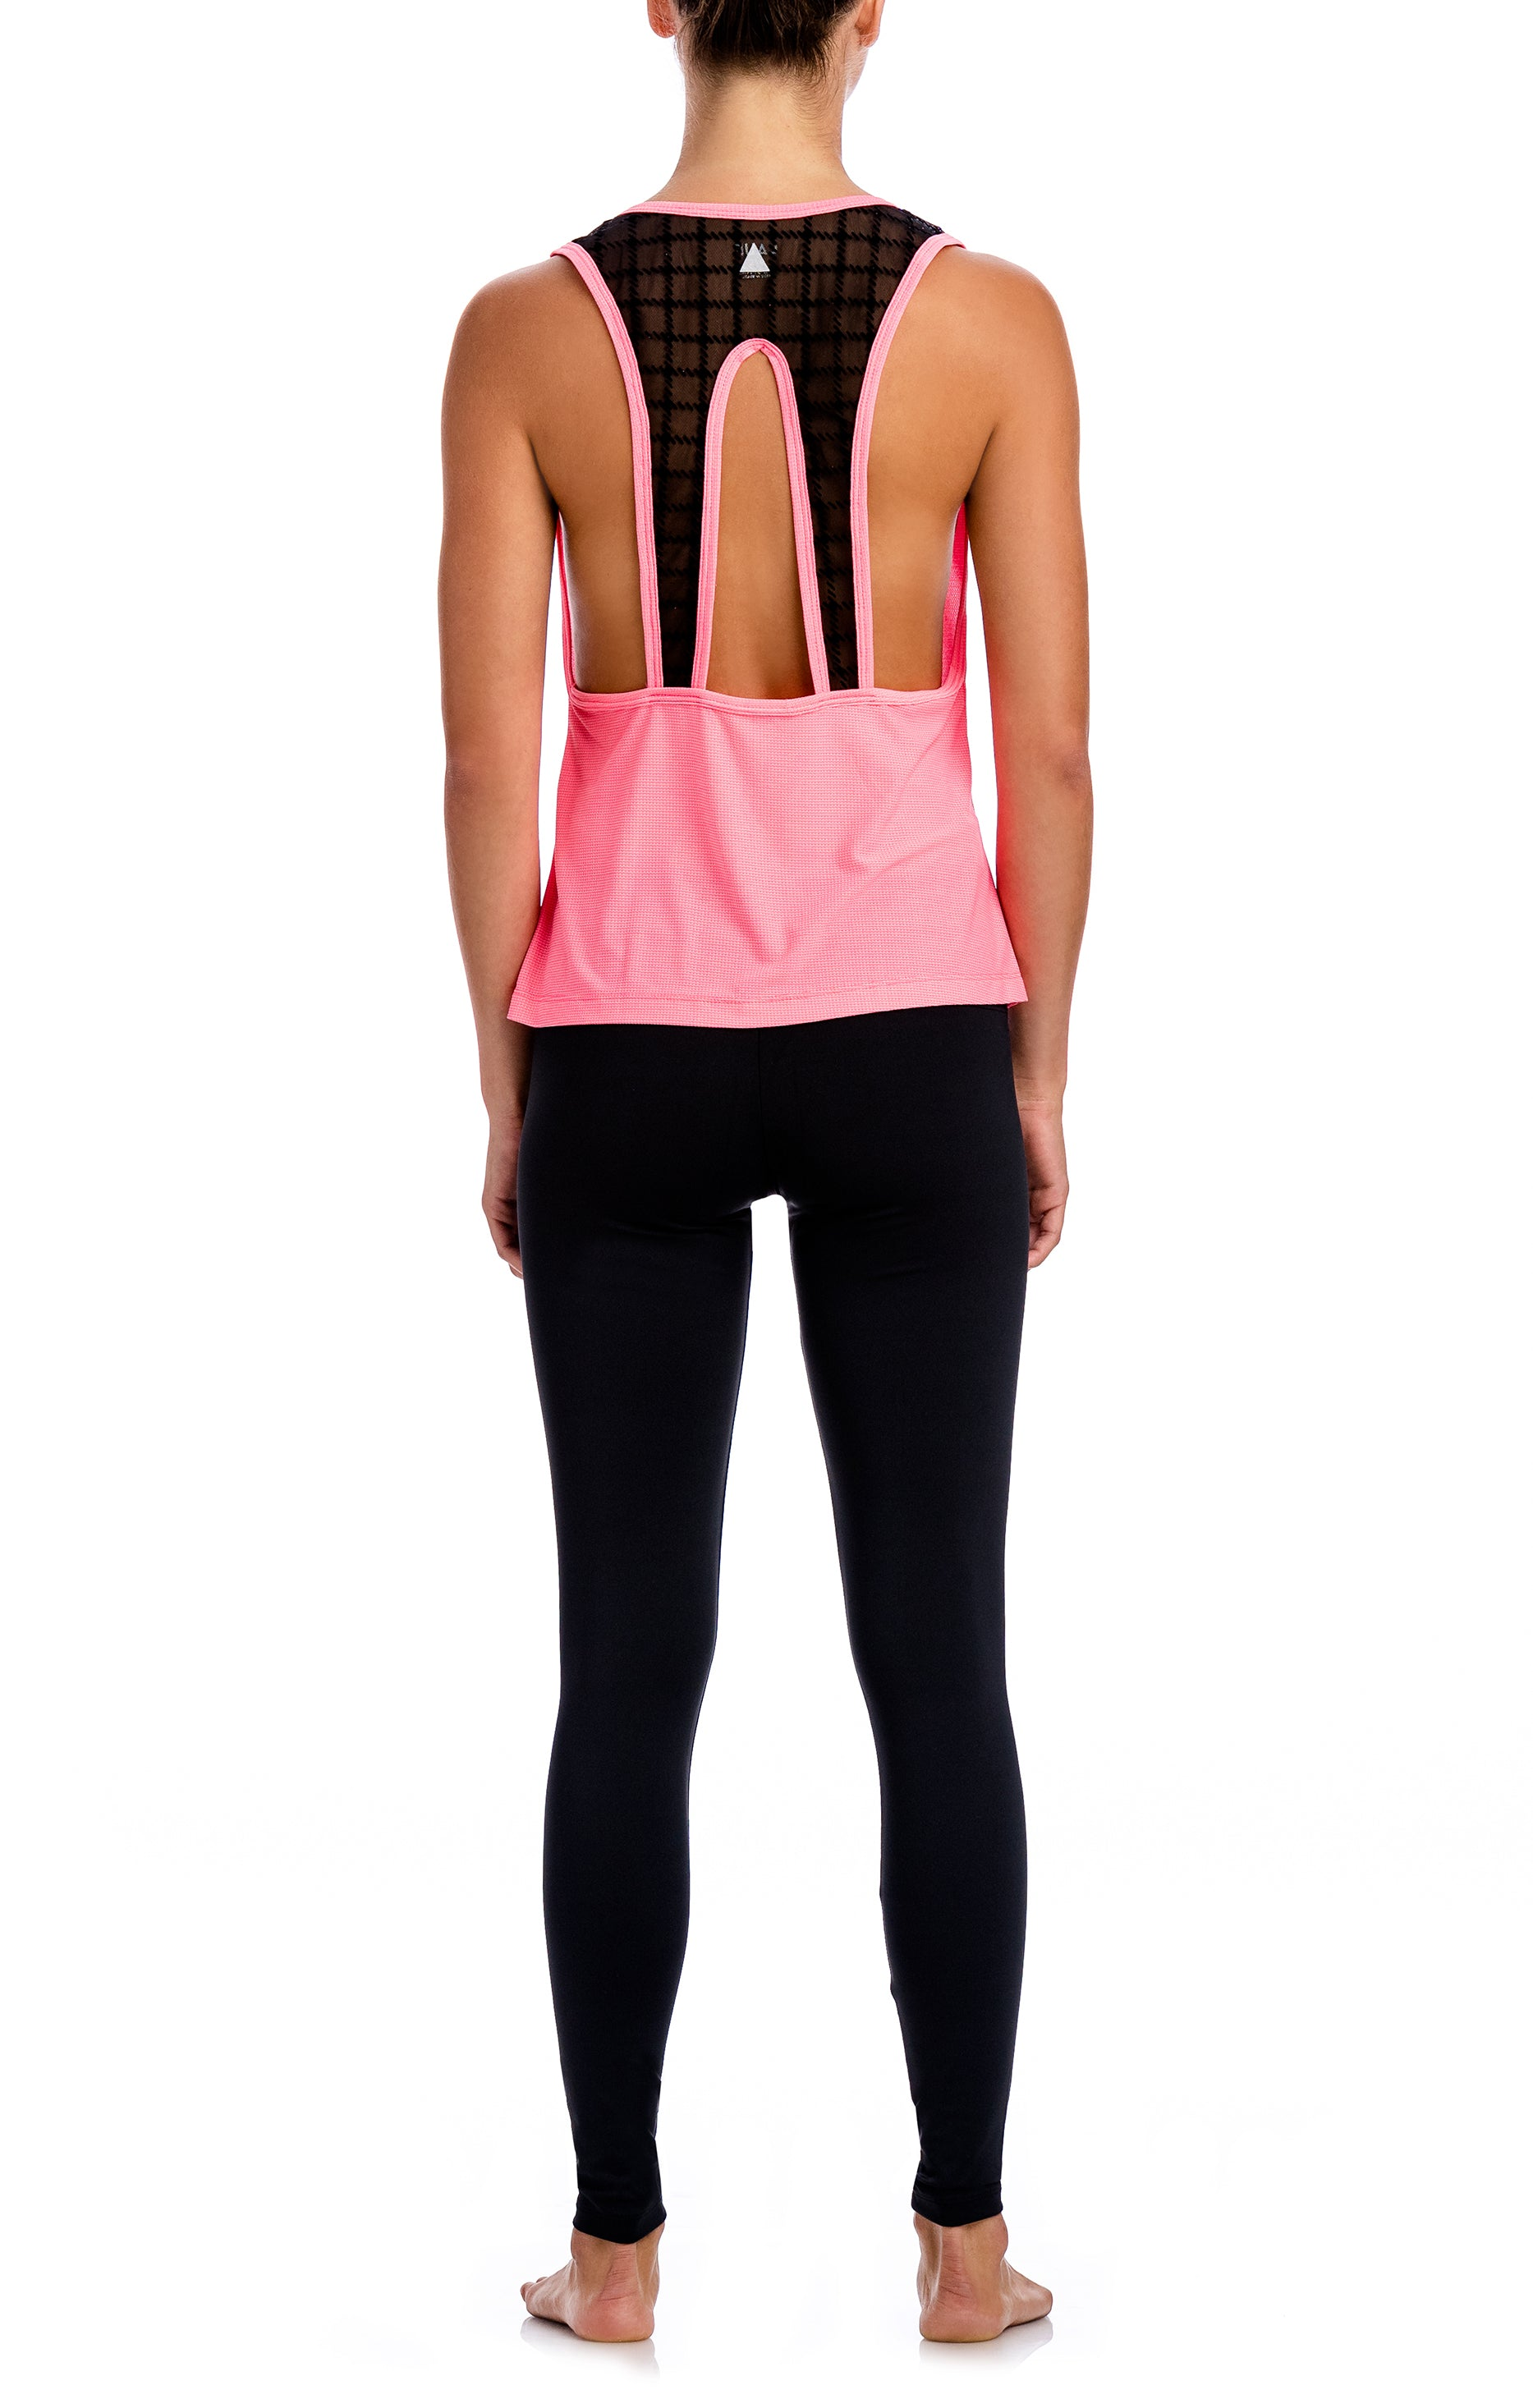 Valerie Top - Workout Tops